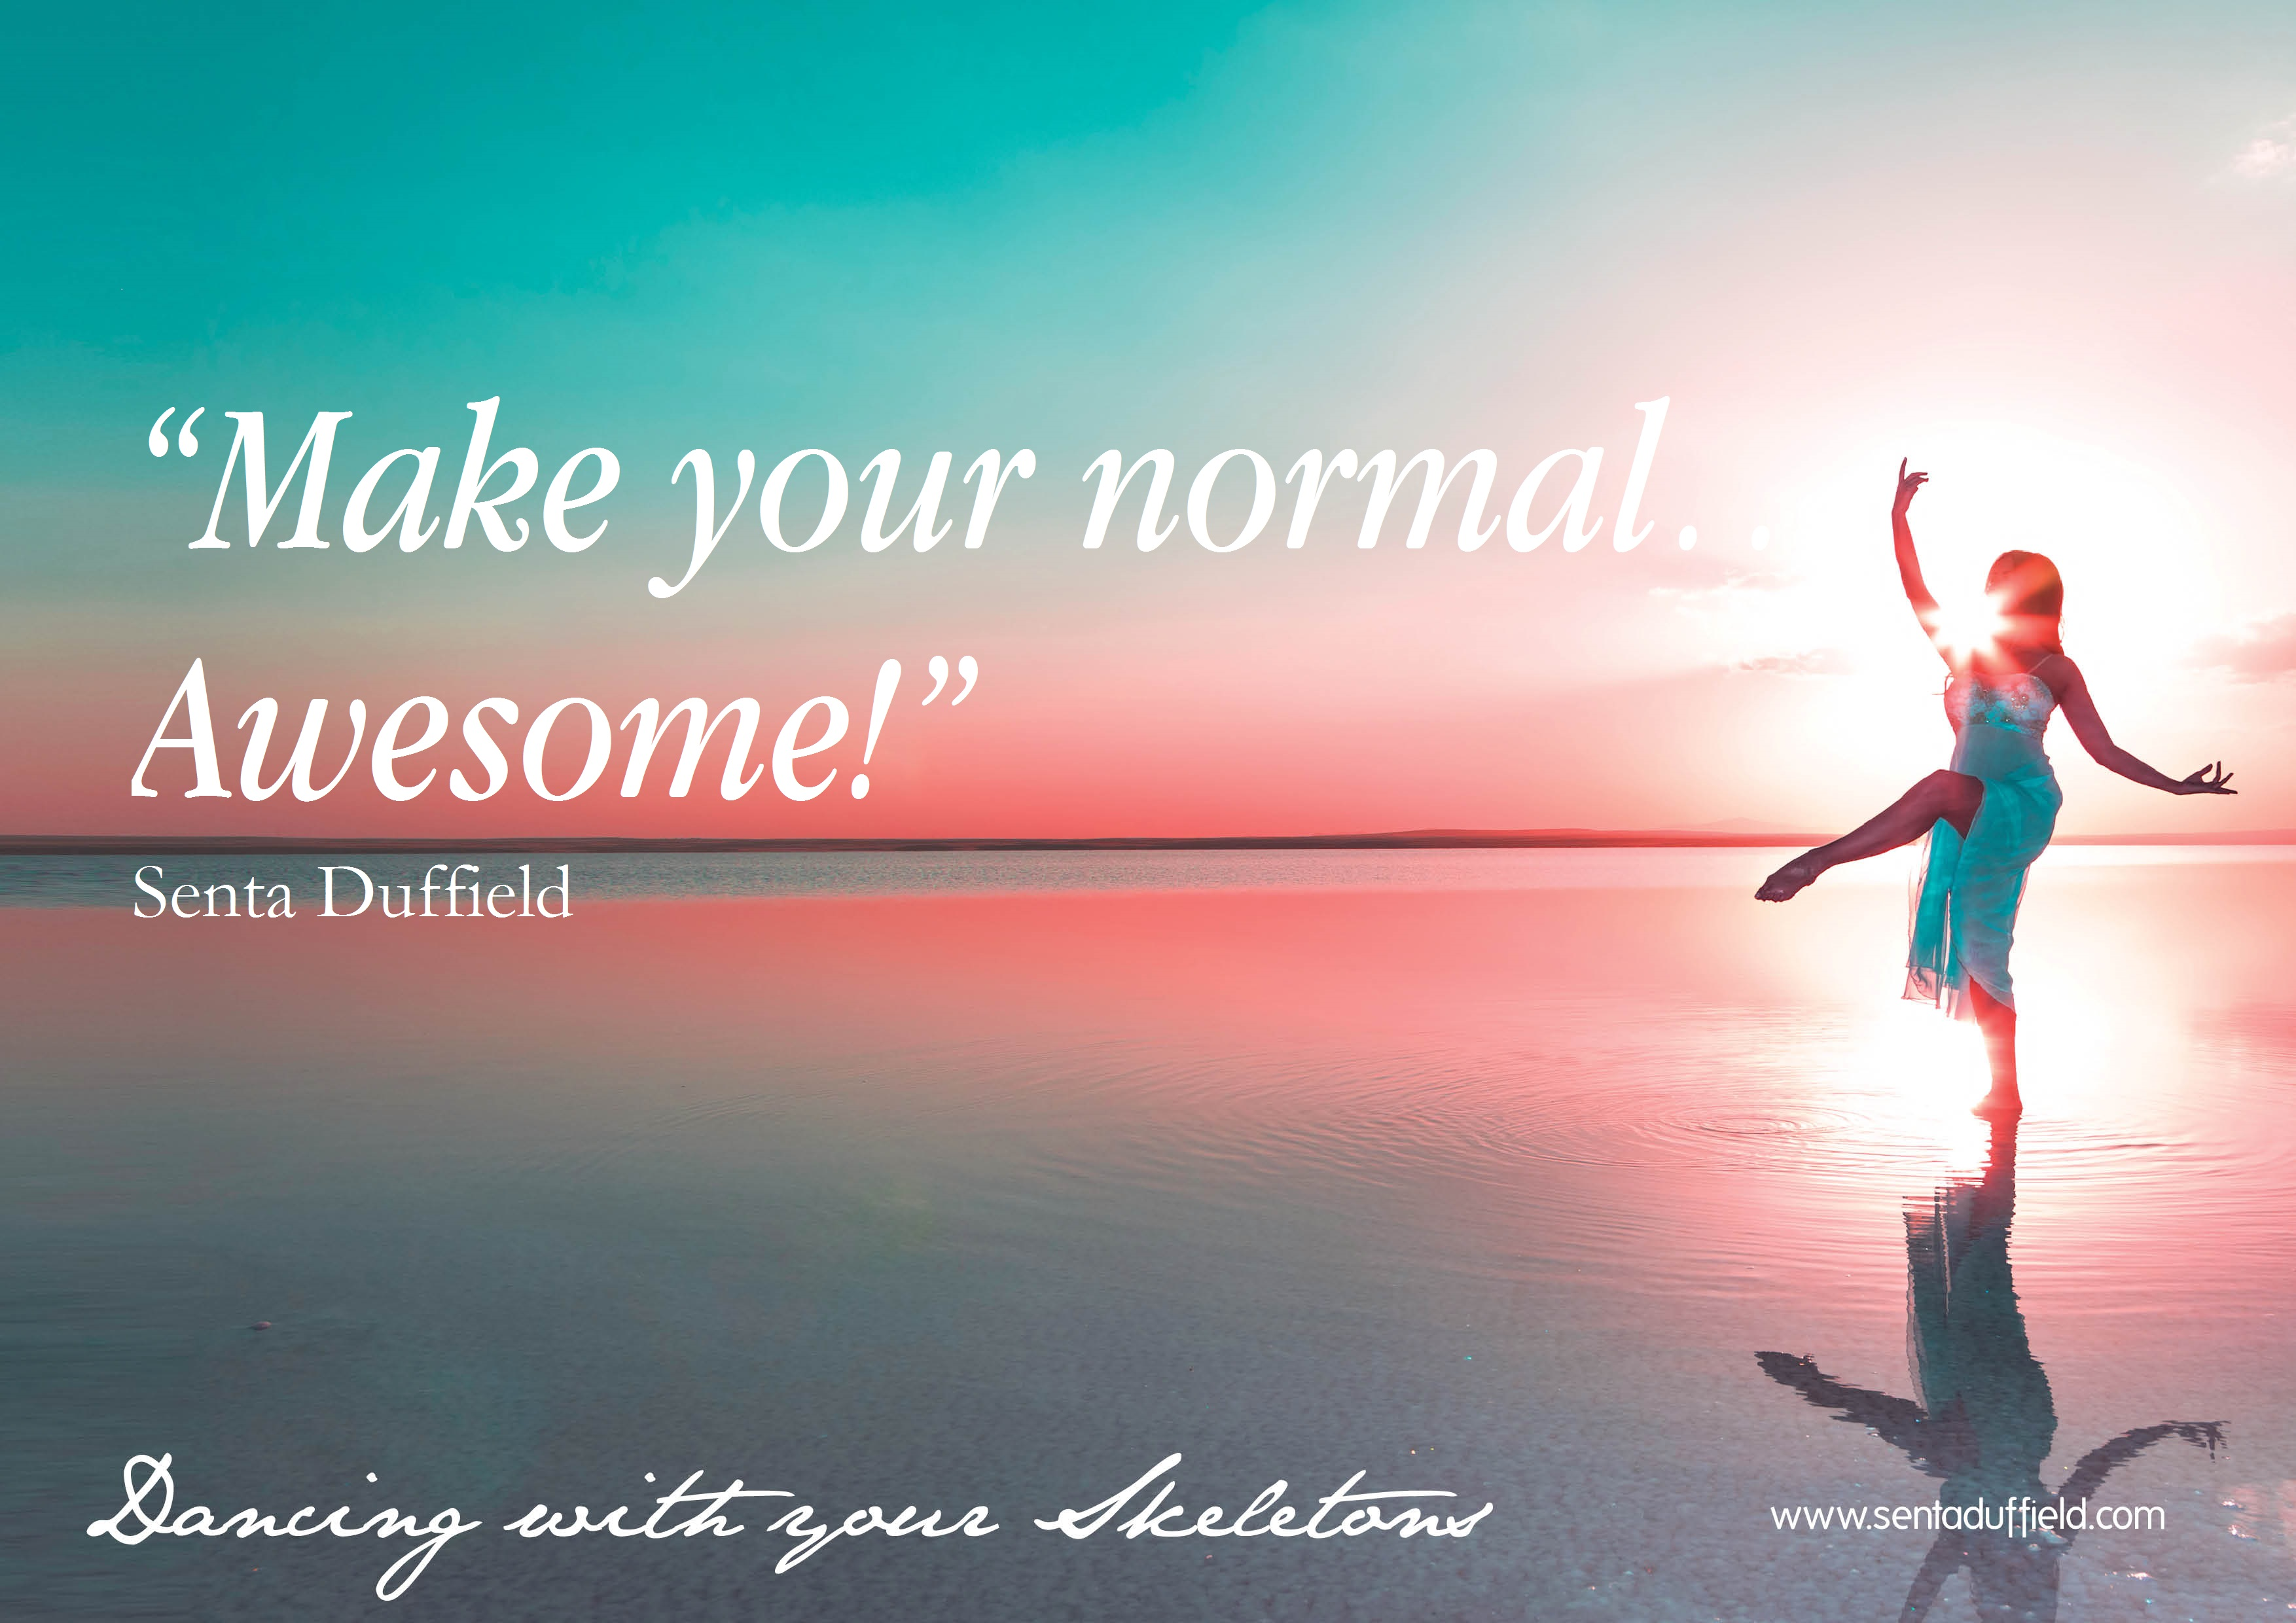 make your normal awesome